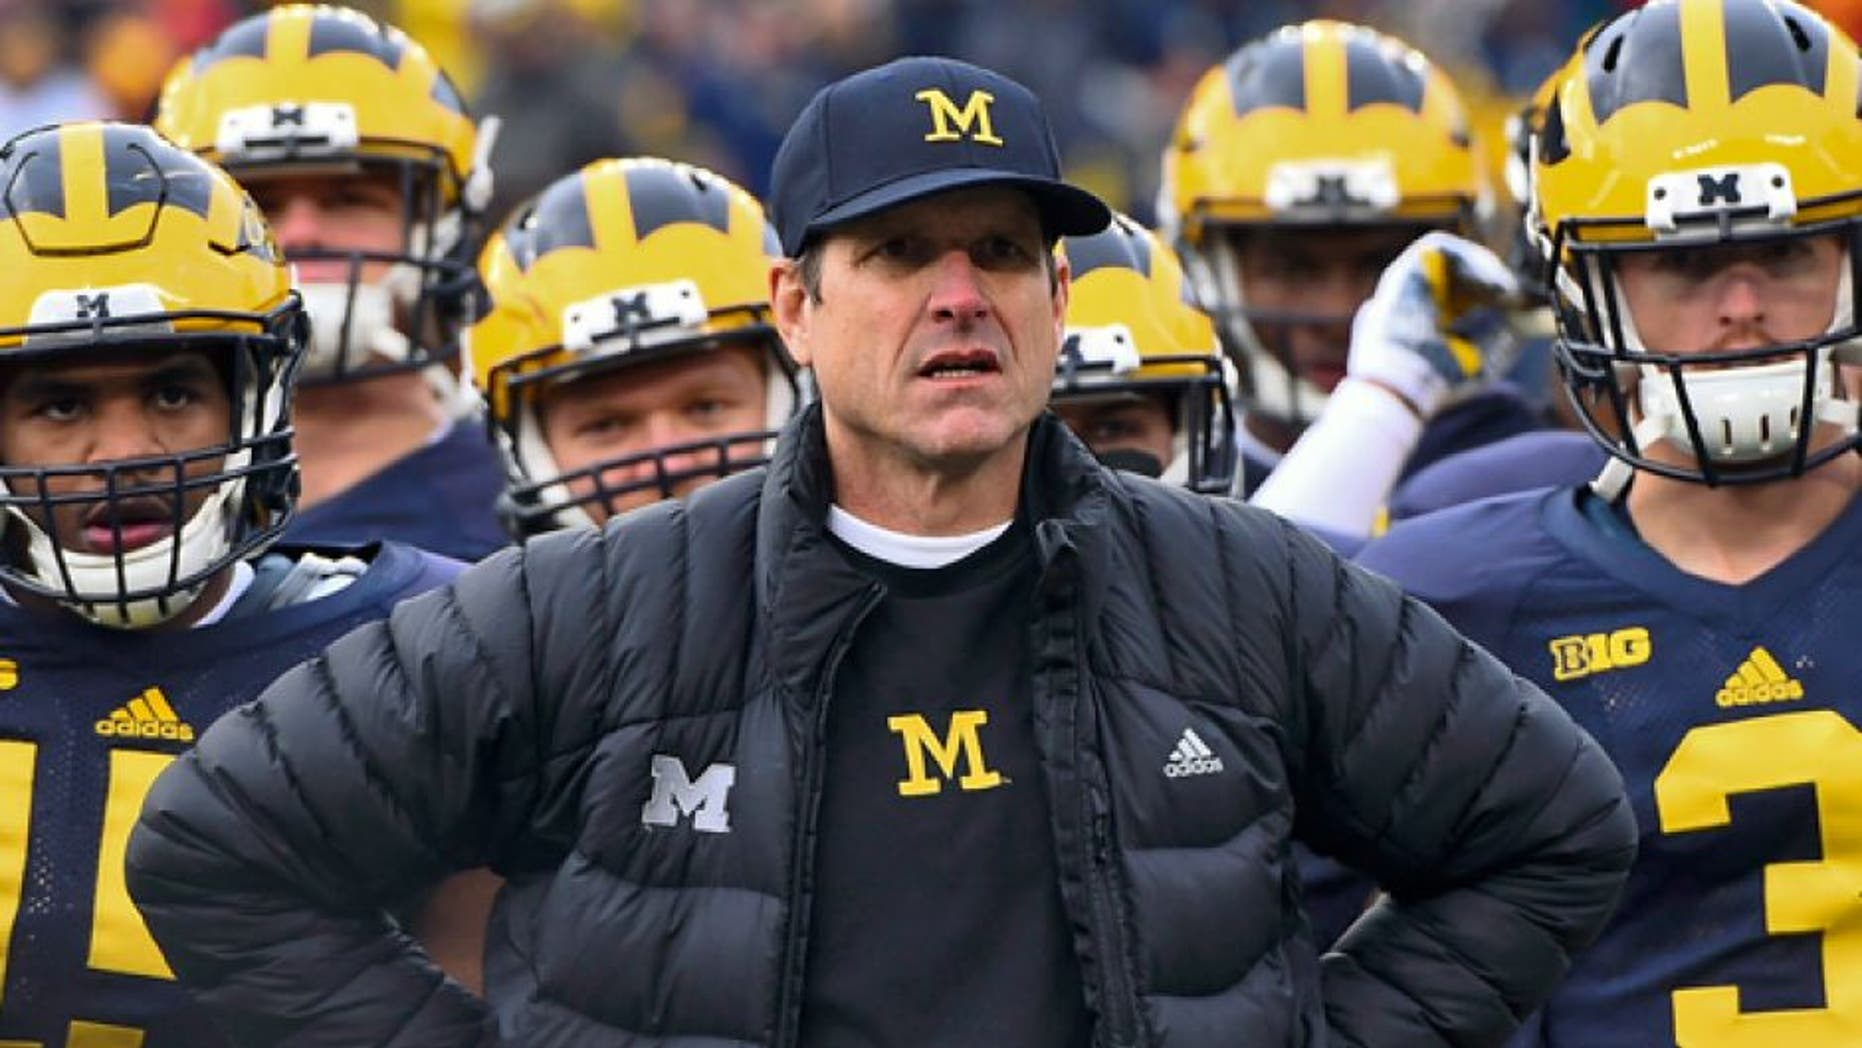 Nov 28, 2015; Ann Arbor, MI, USA; Michigan Wolverines head coach Jim Harbaugh on the sideline during the first half against the Ohio State Buckeyes at Michigan Stadium. Mandatory Credit: Tim Fuller-USA TODAY Sports